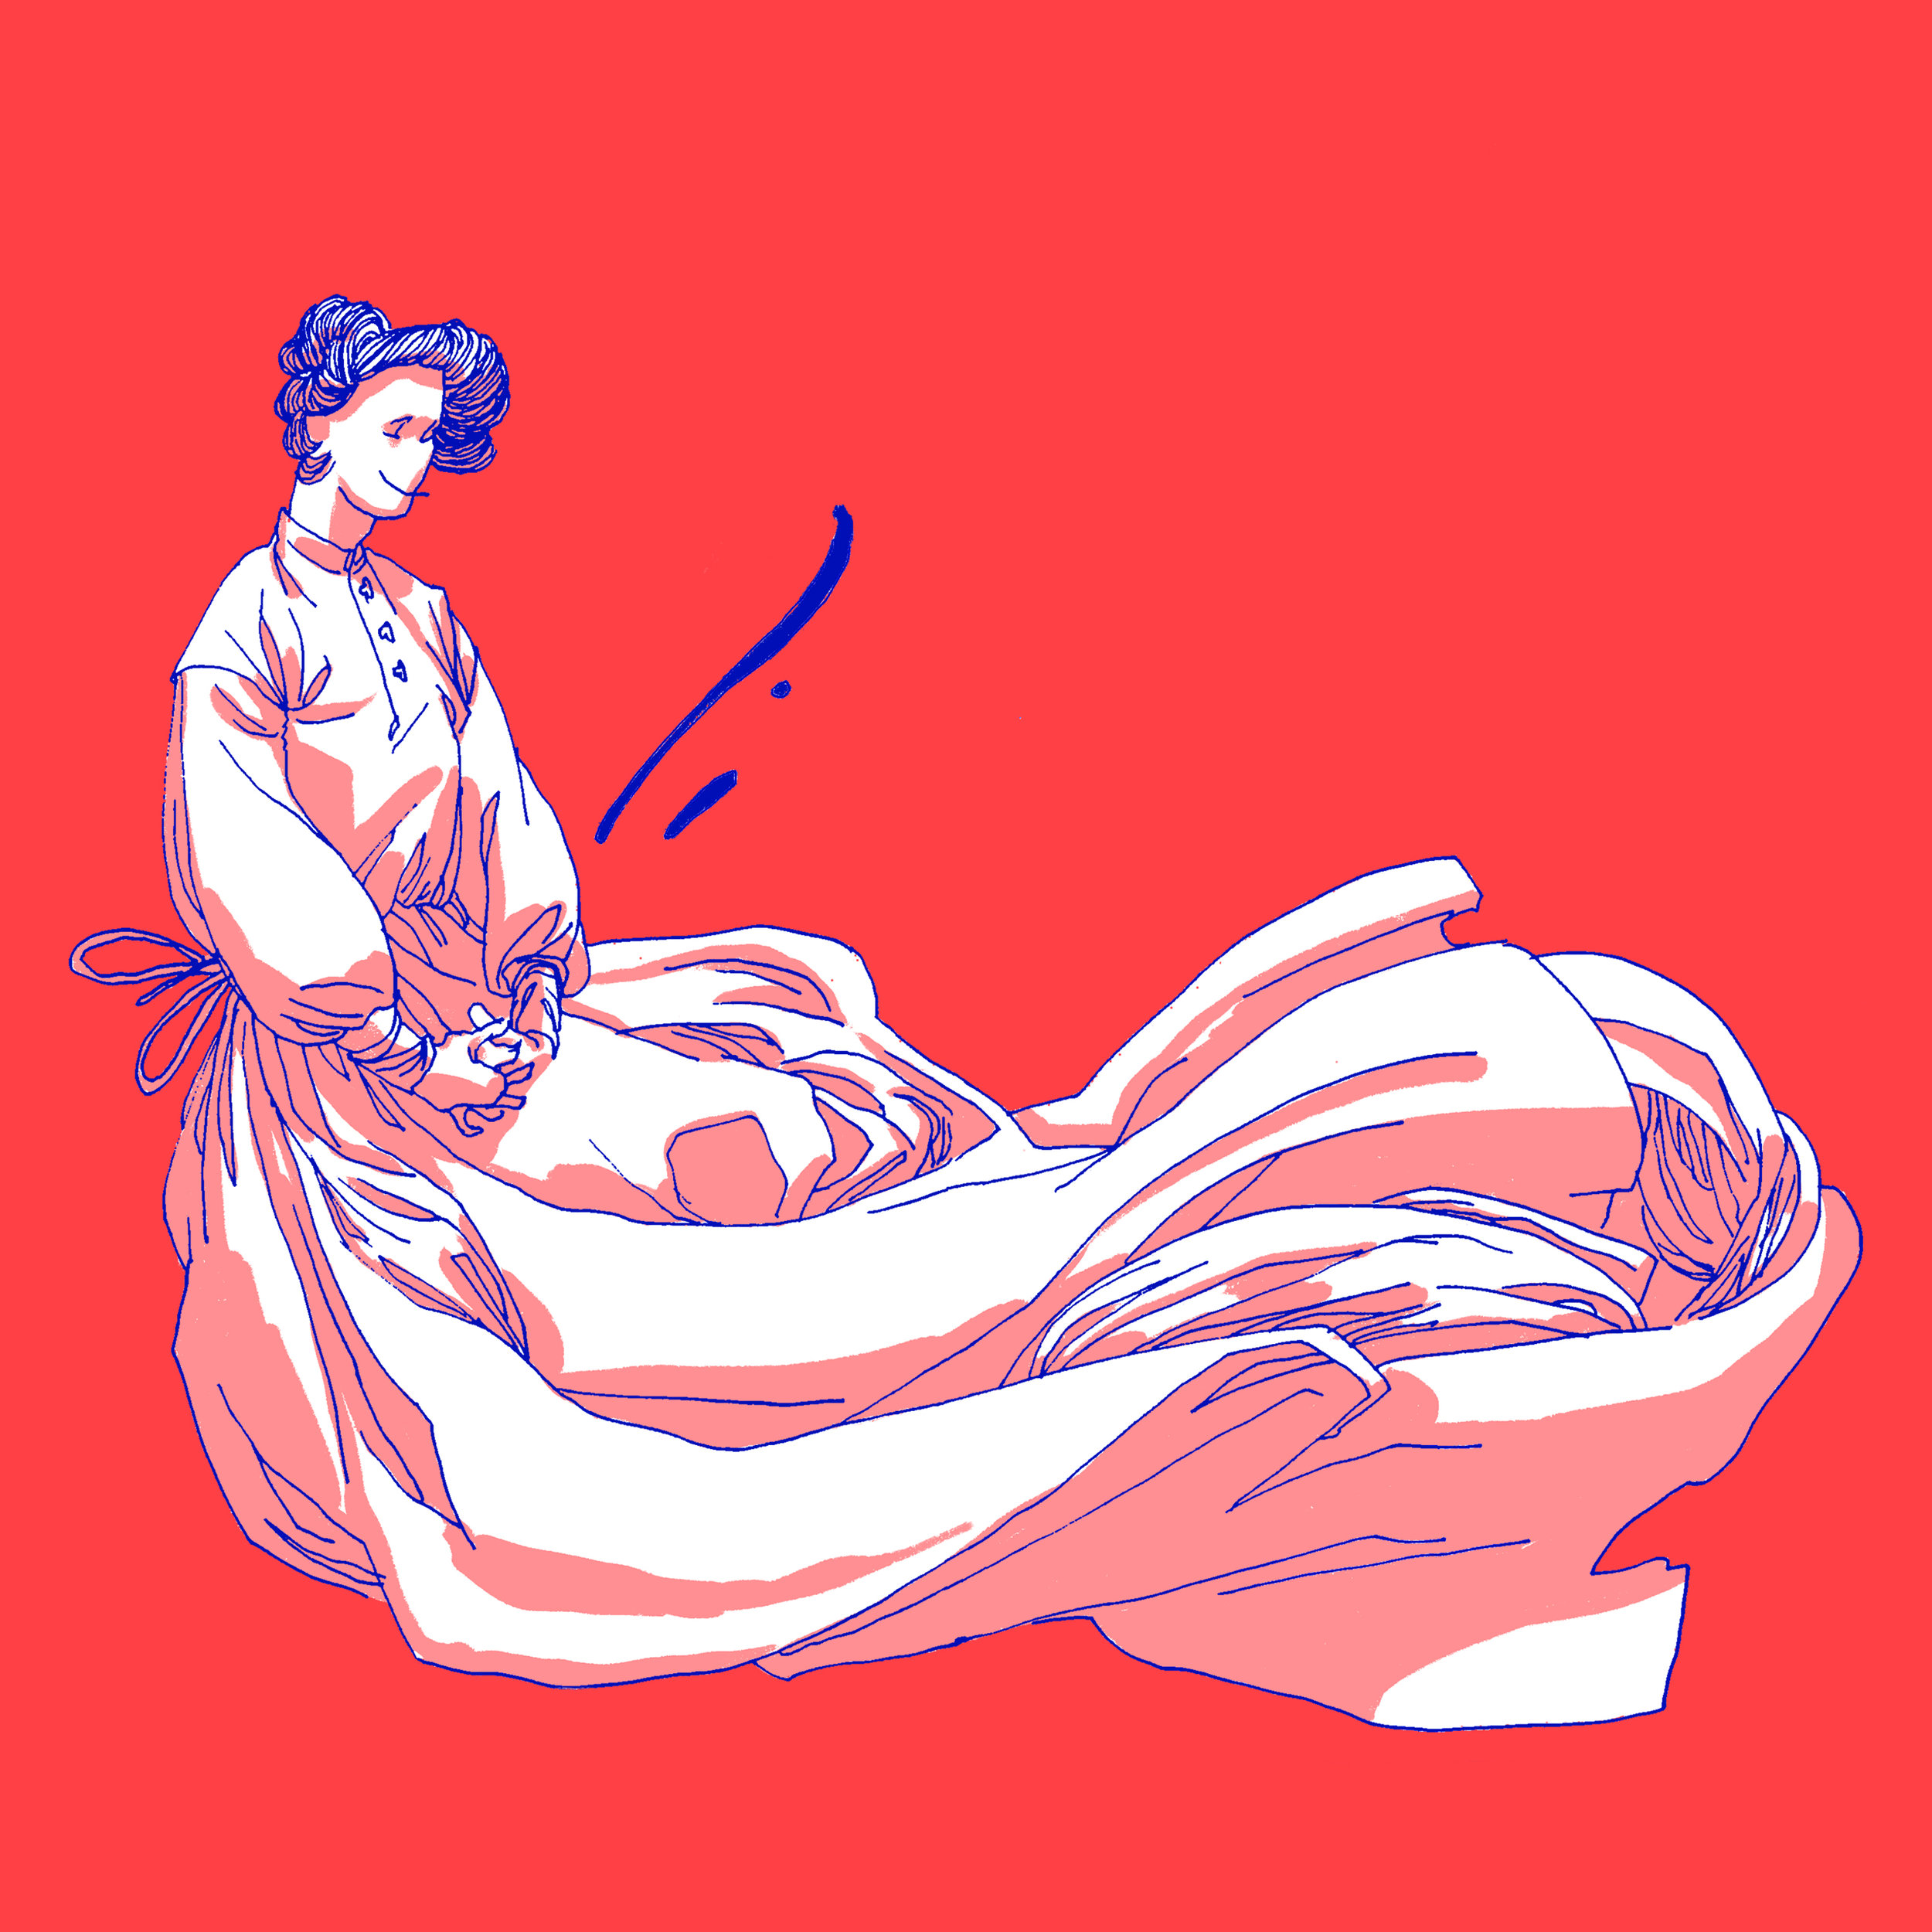 Illustration for group release risograph prints to raise funds for donation to Access Reproductive Care.